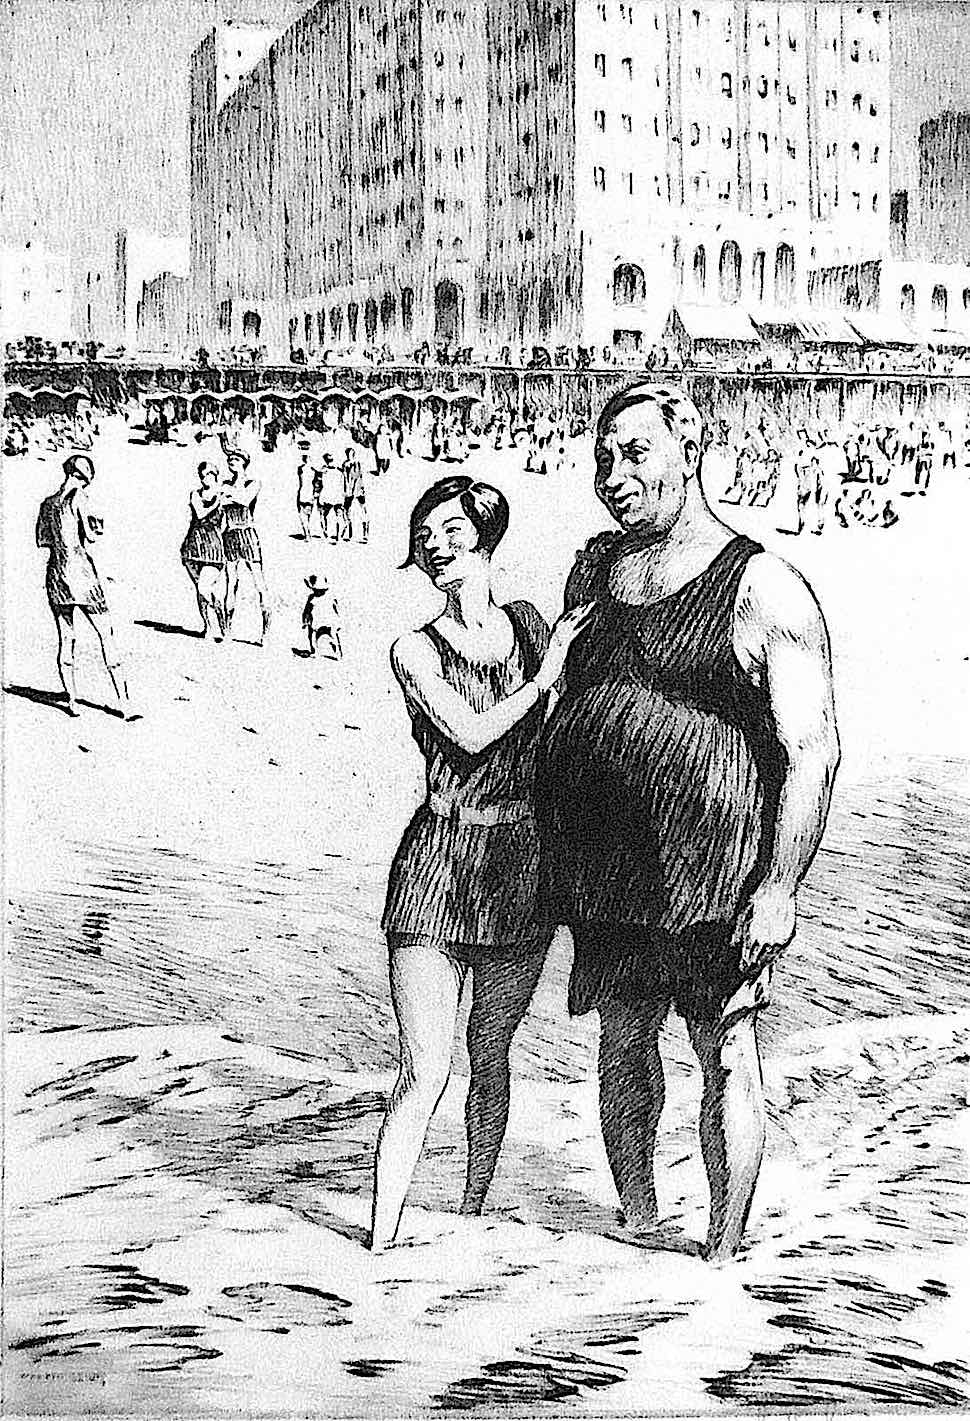 a Martin Lewis 1926 print of people at a beach